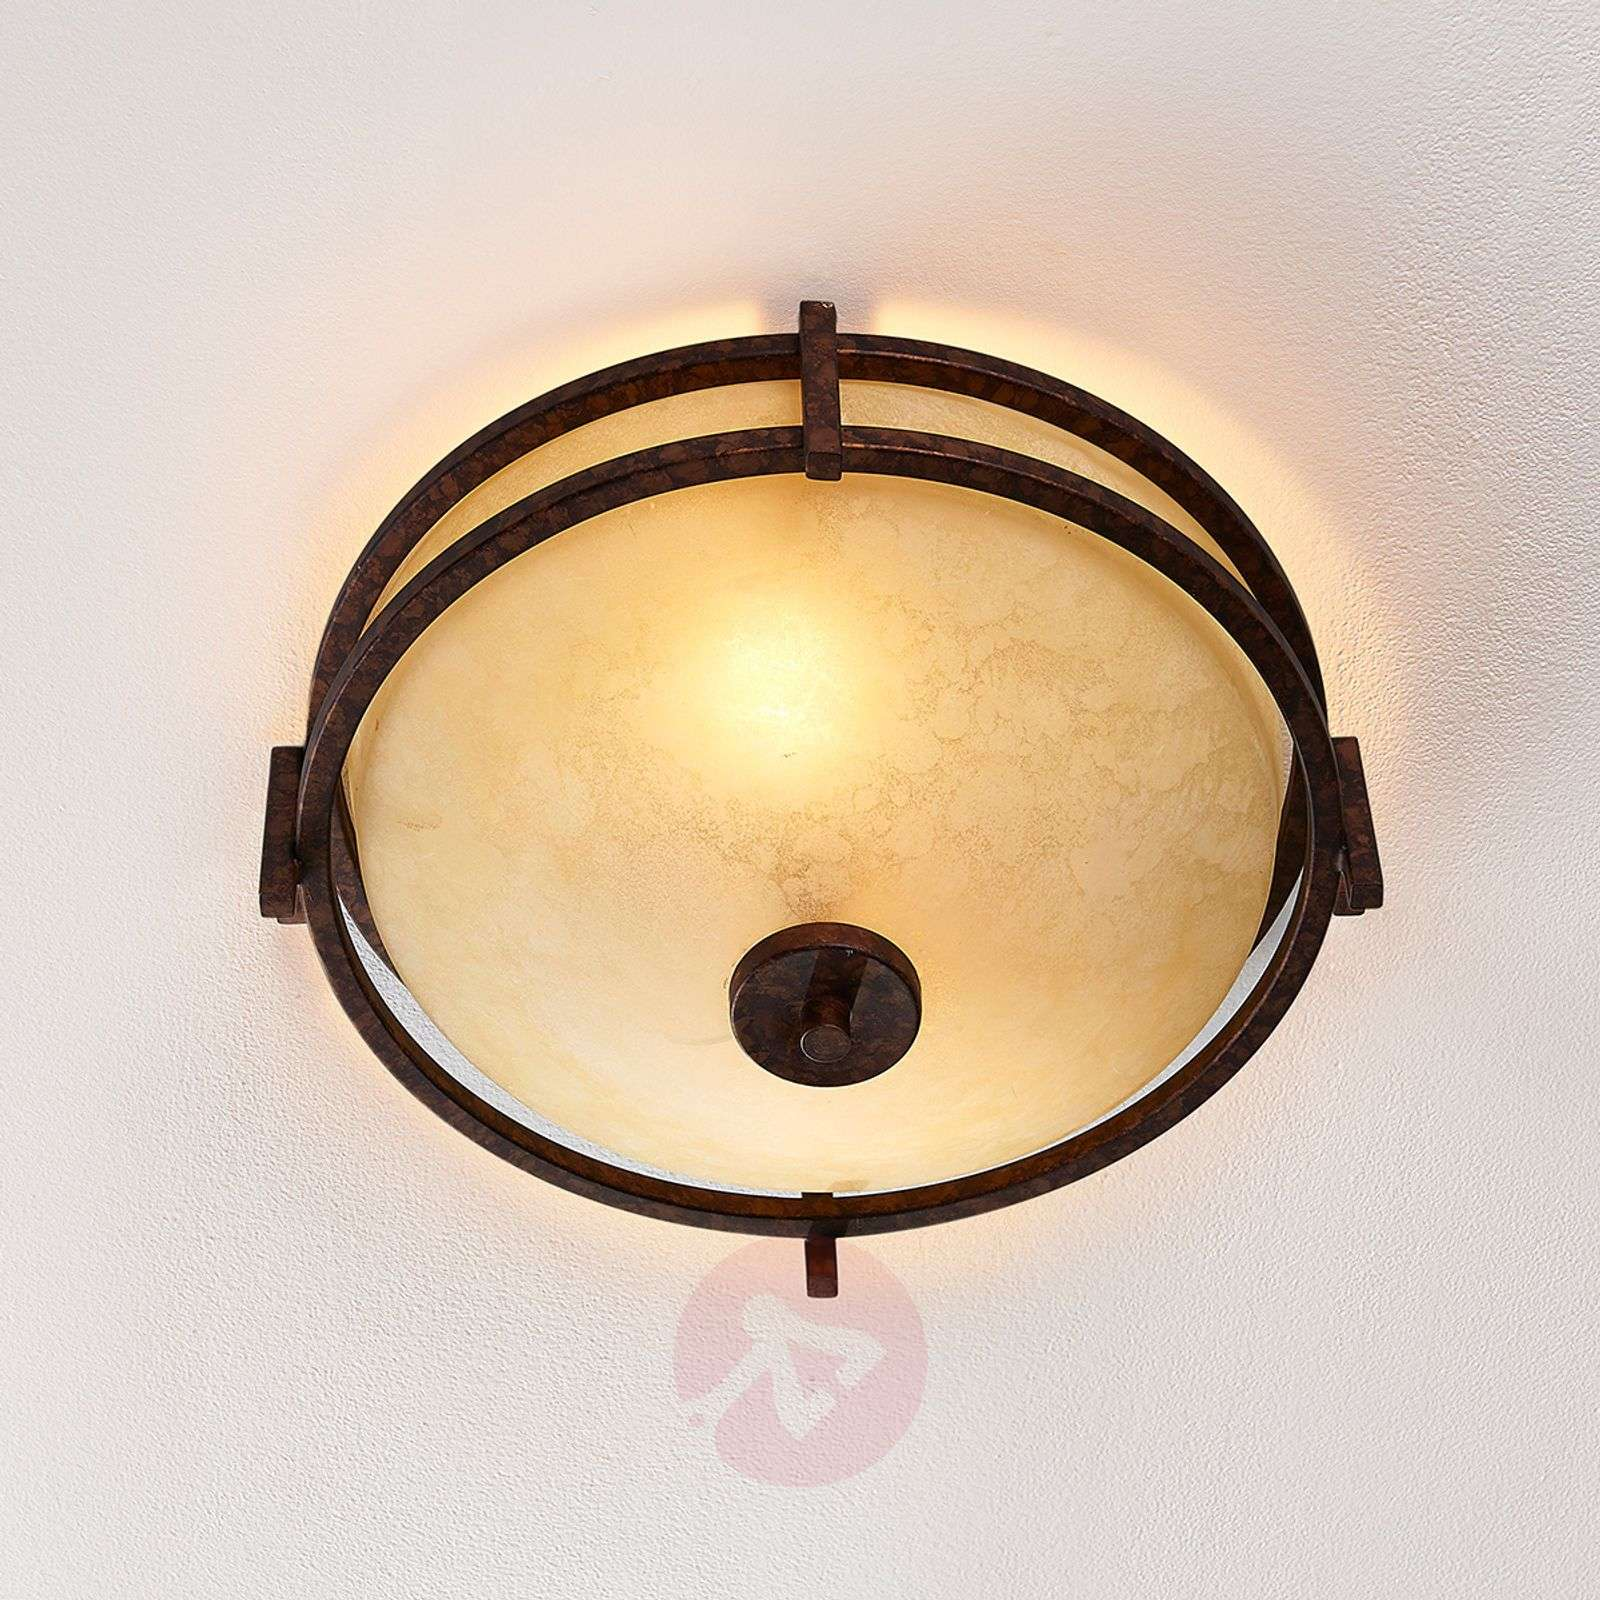 Rustic-looking ceiling lamp Rosanna-9620652-01